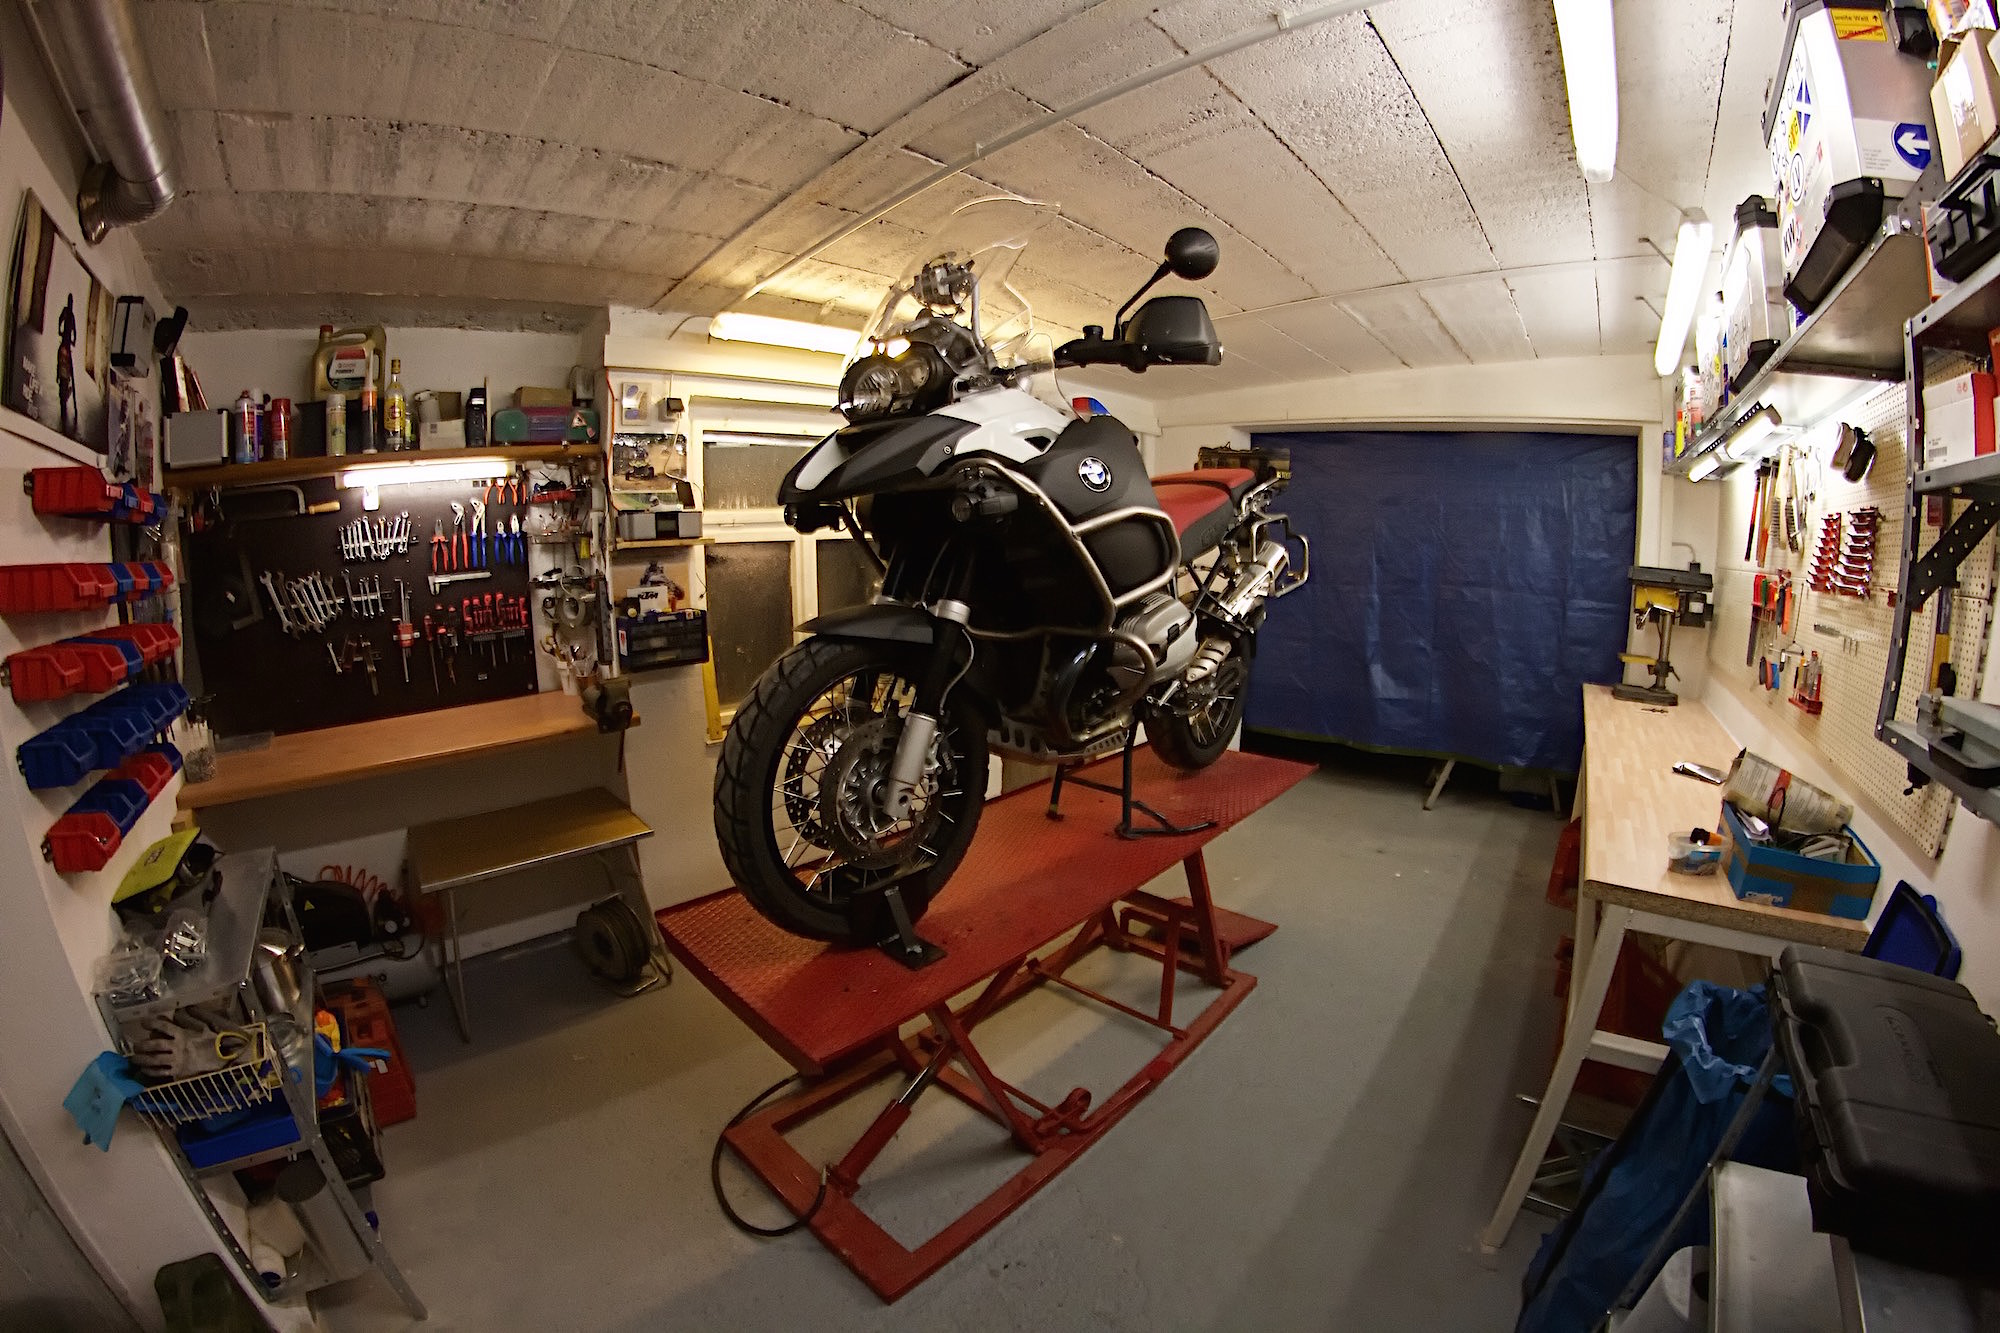 moped-garage-2.jpg